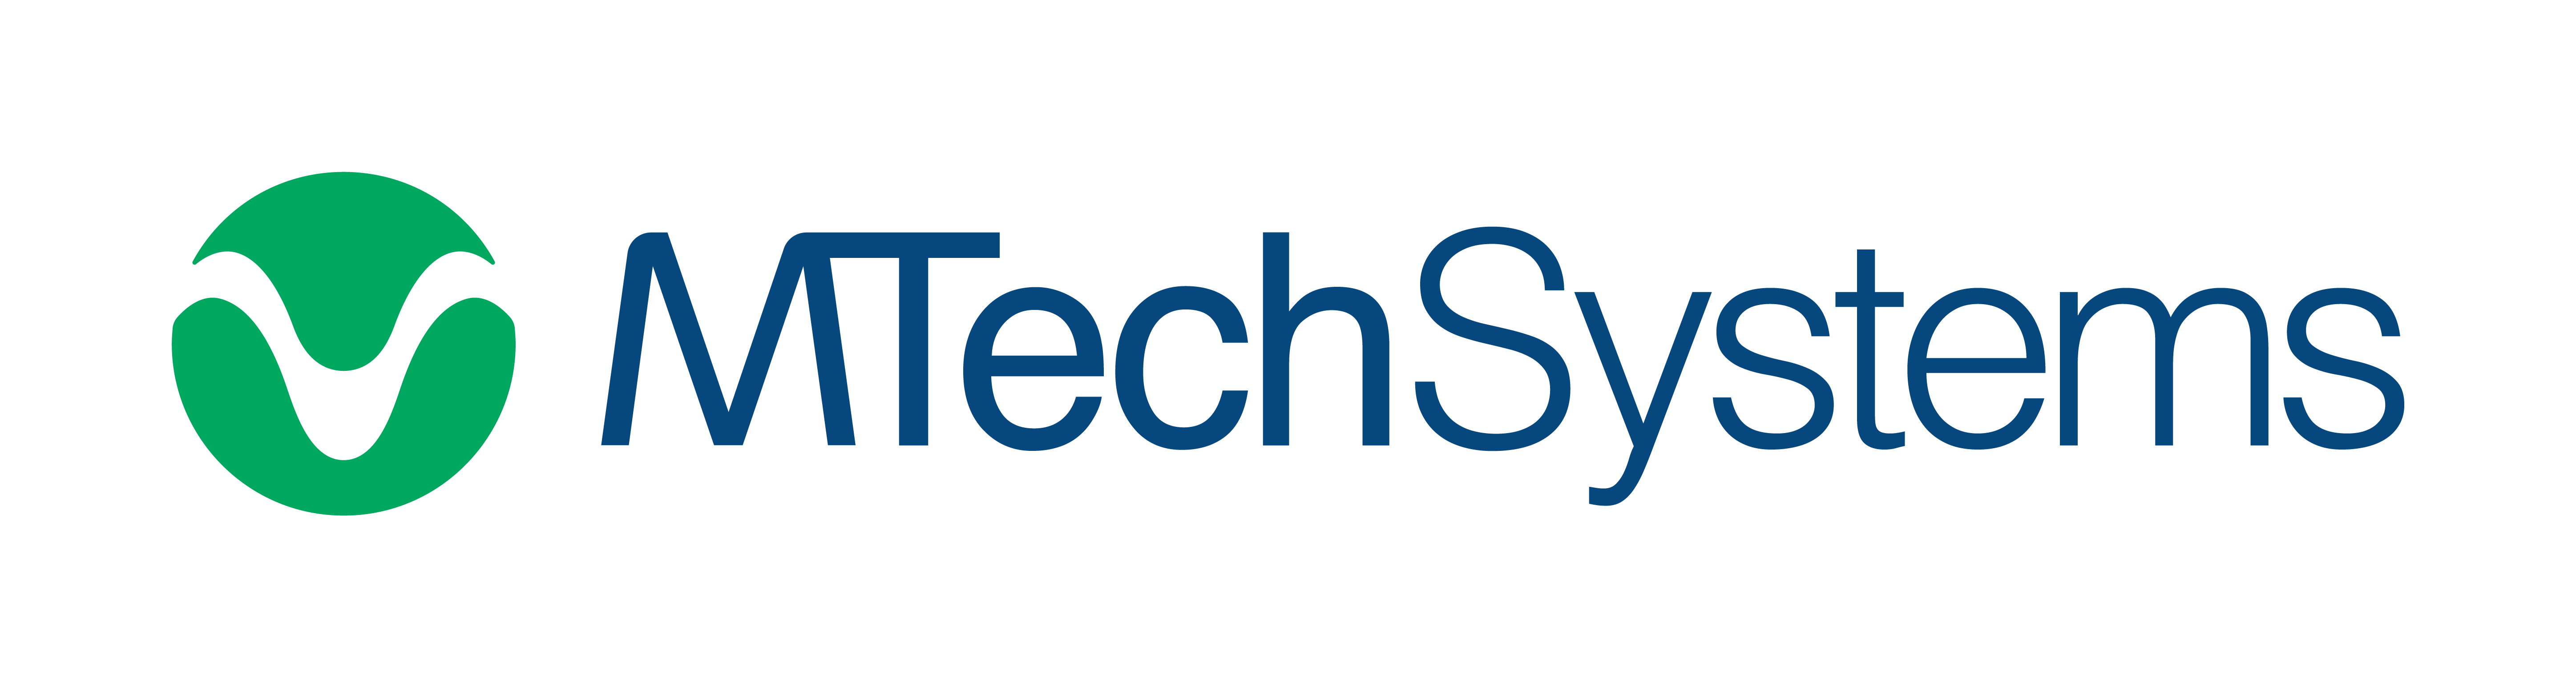 Logo_MTechSystems-flat-gb.png